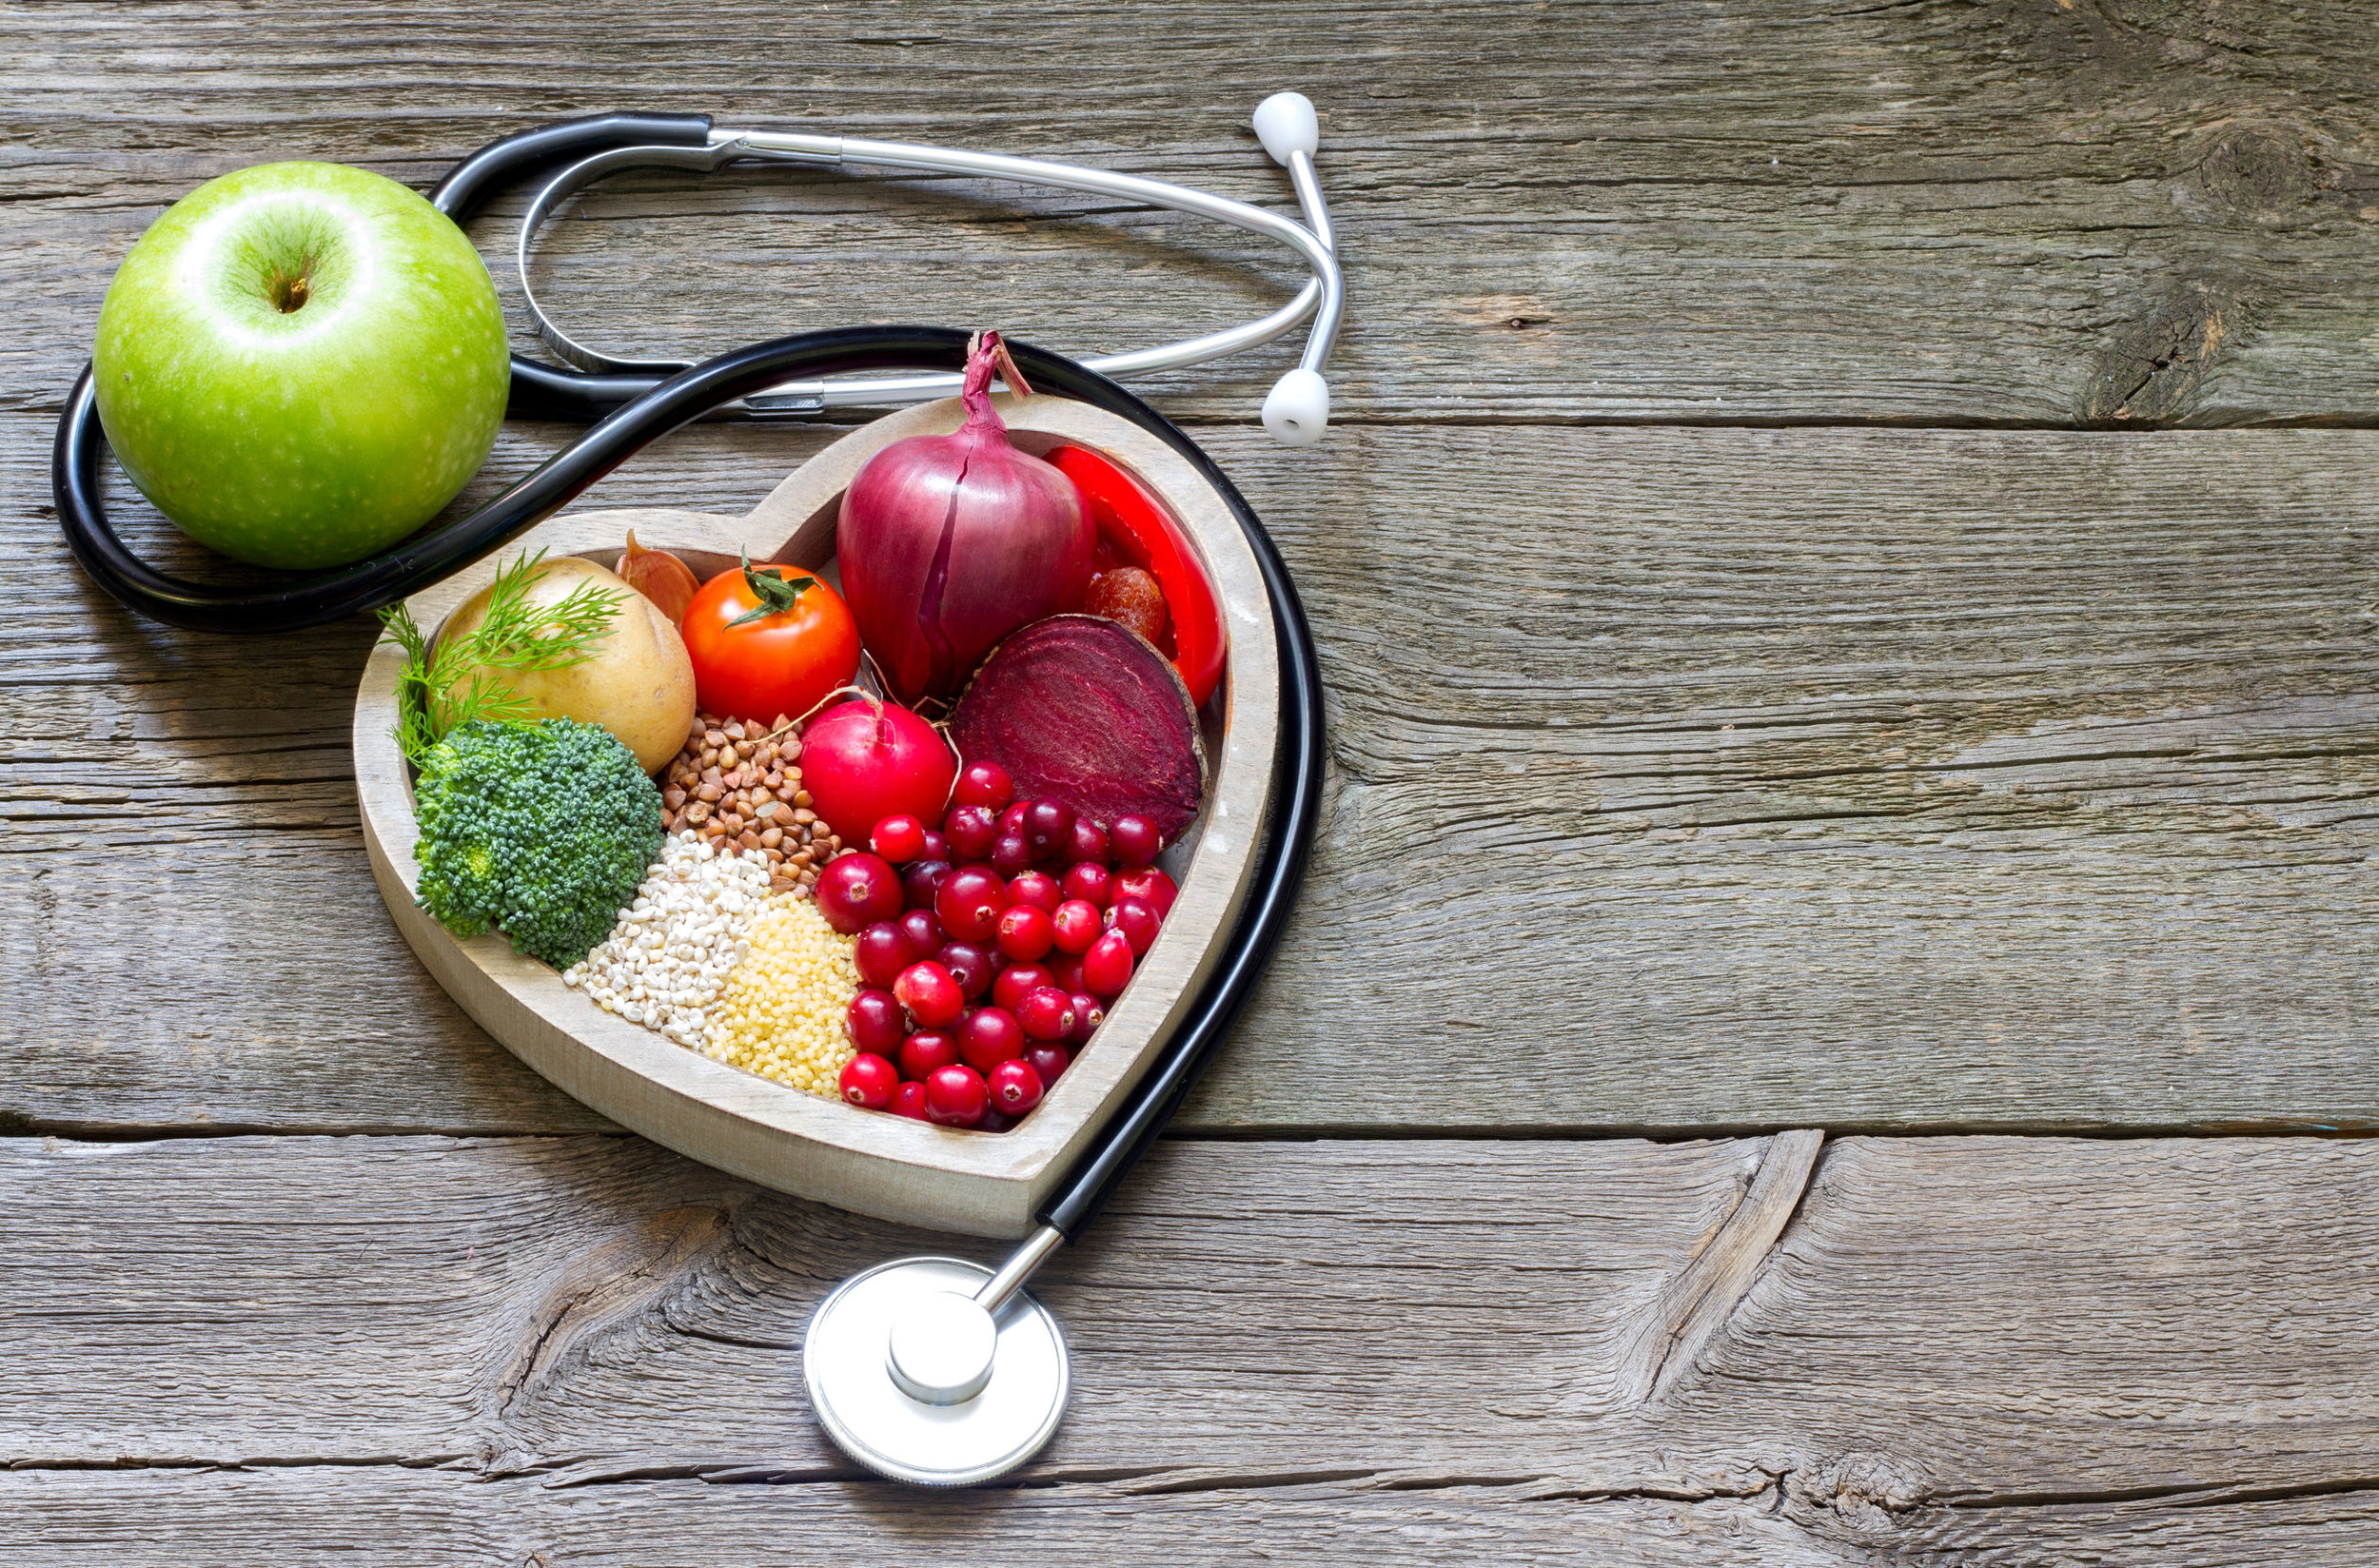 Heart, Healthy food, Stethoscope